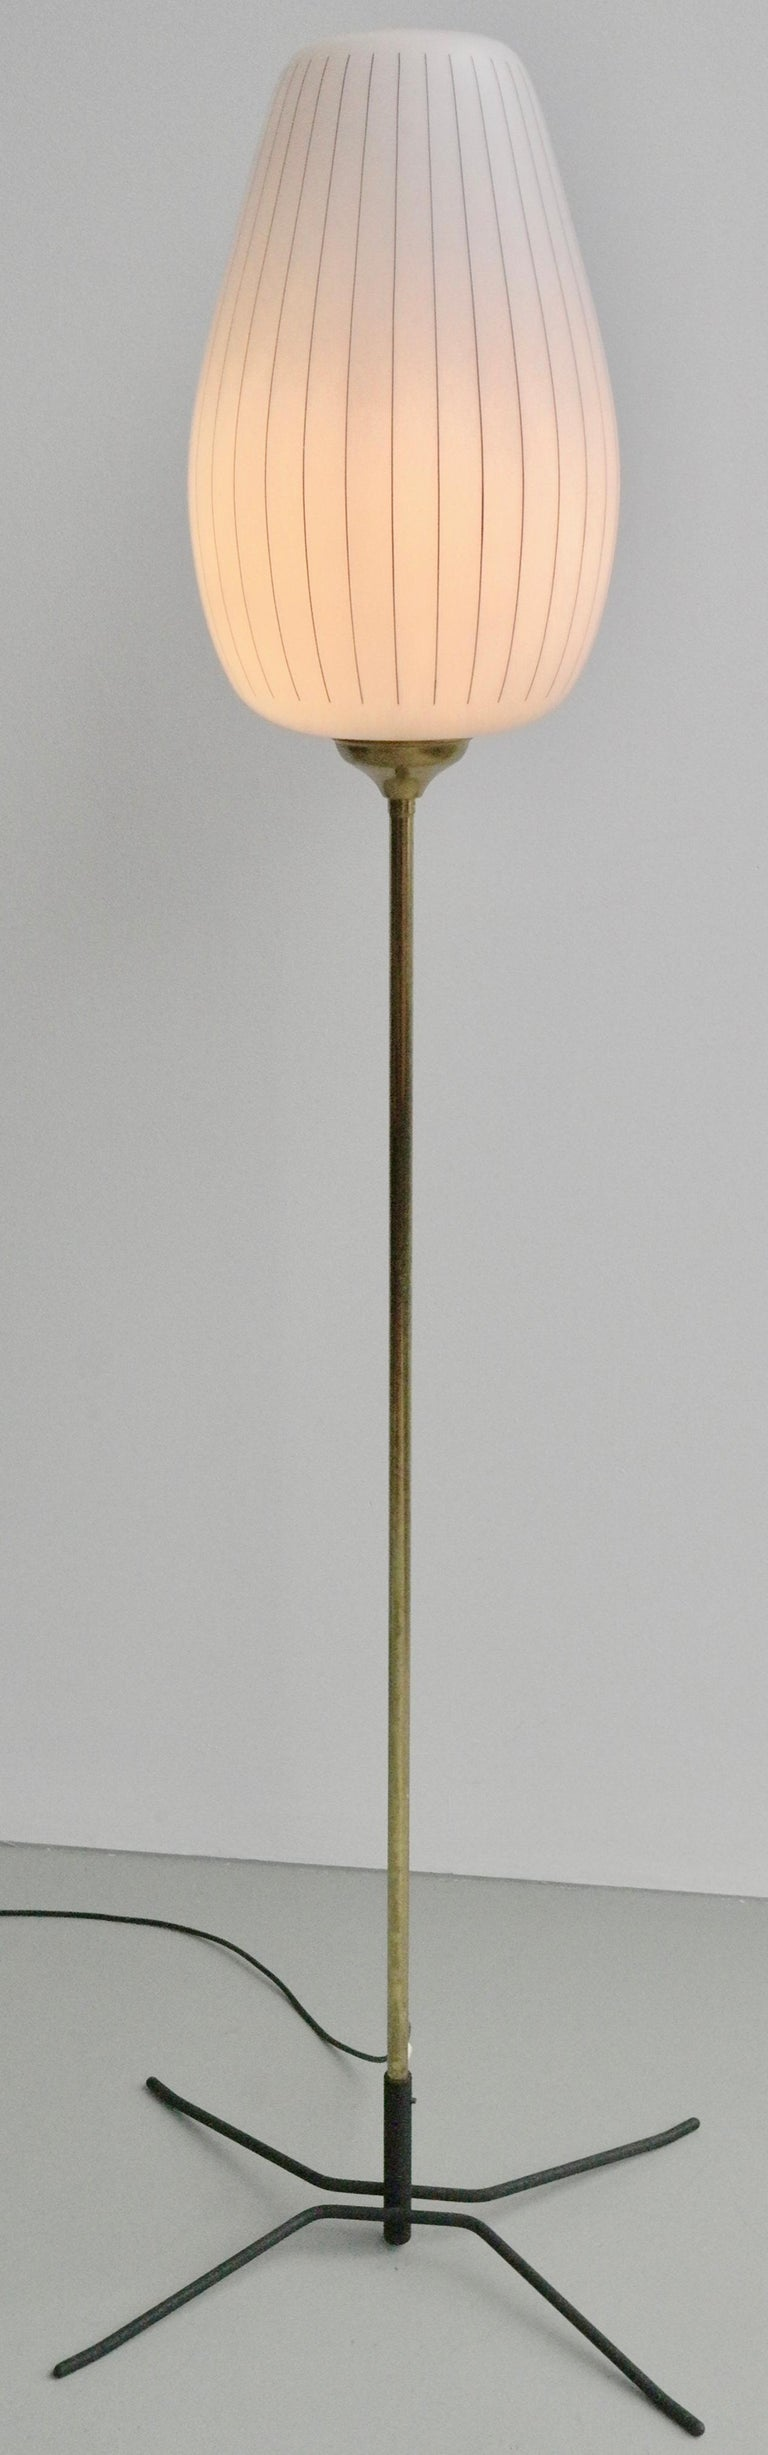 Striped Opaline Glass and Brass Floorlamp, Italy, 1950s For Sale 6